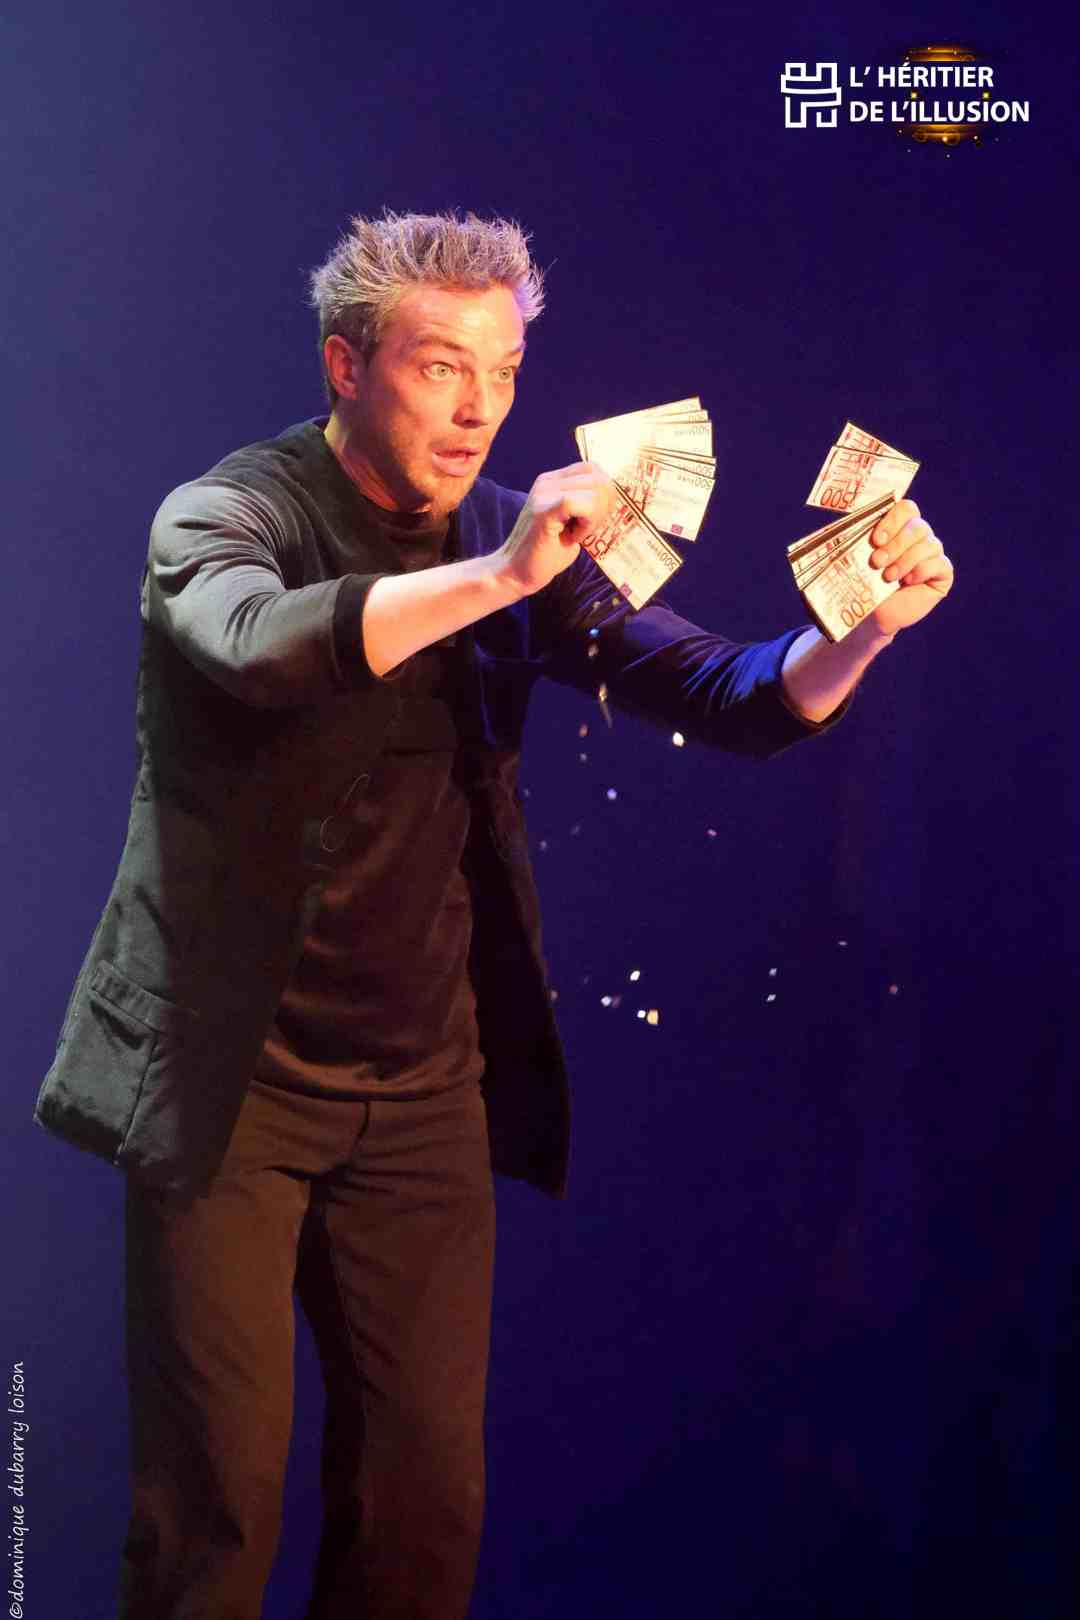 Le Monde de Felix Héritier d'Or 2019 Magic Festival